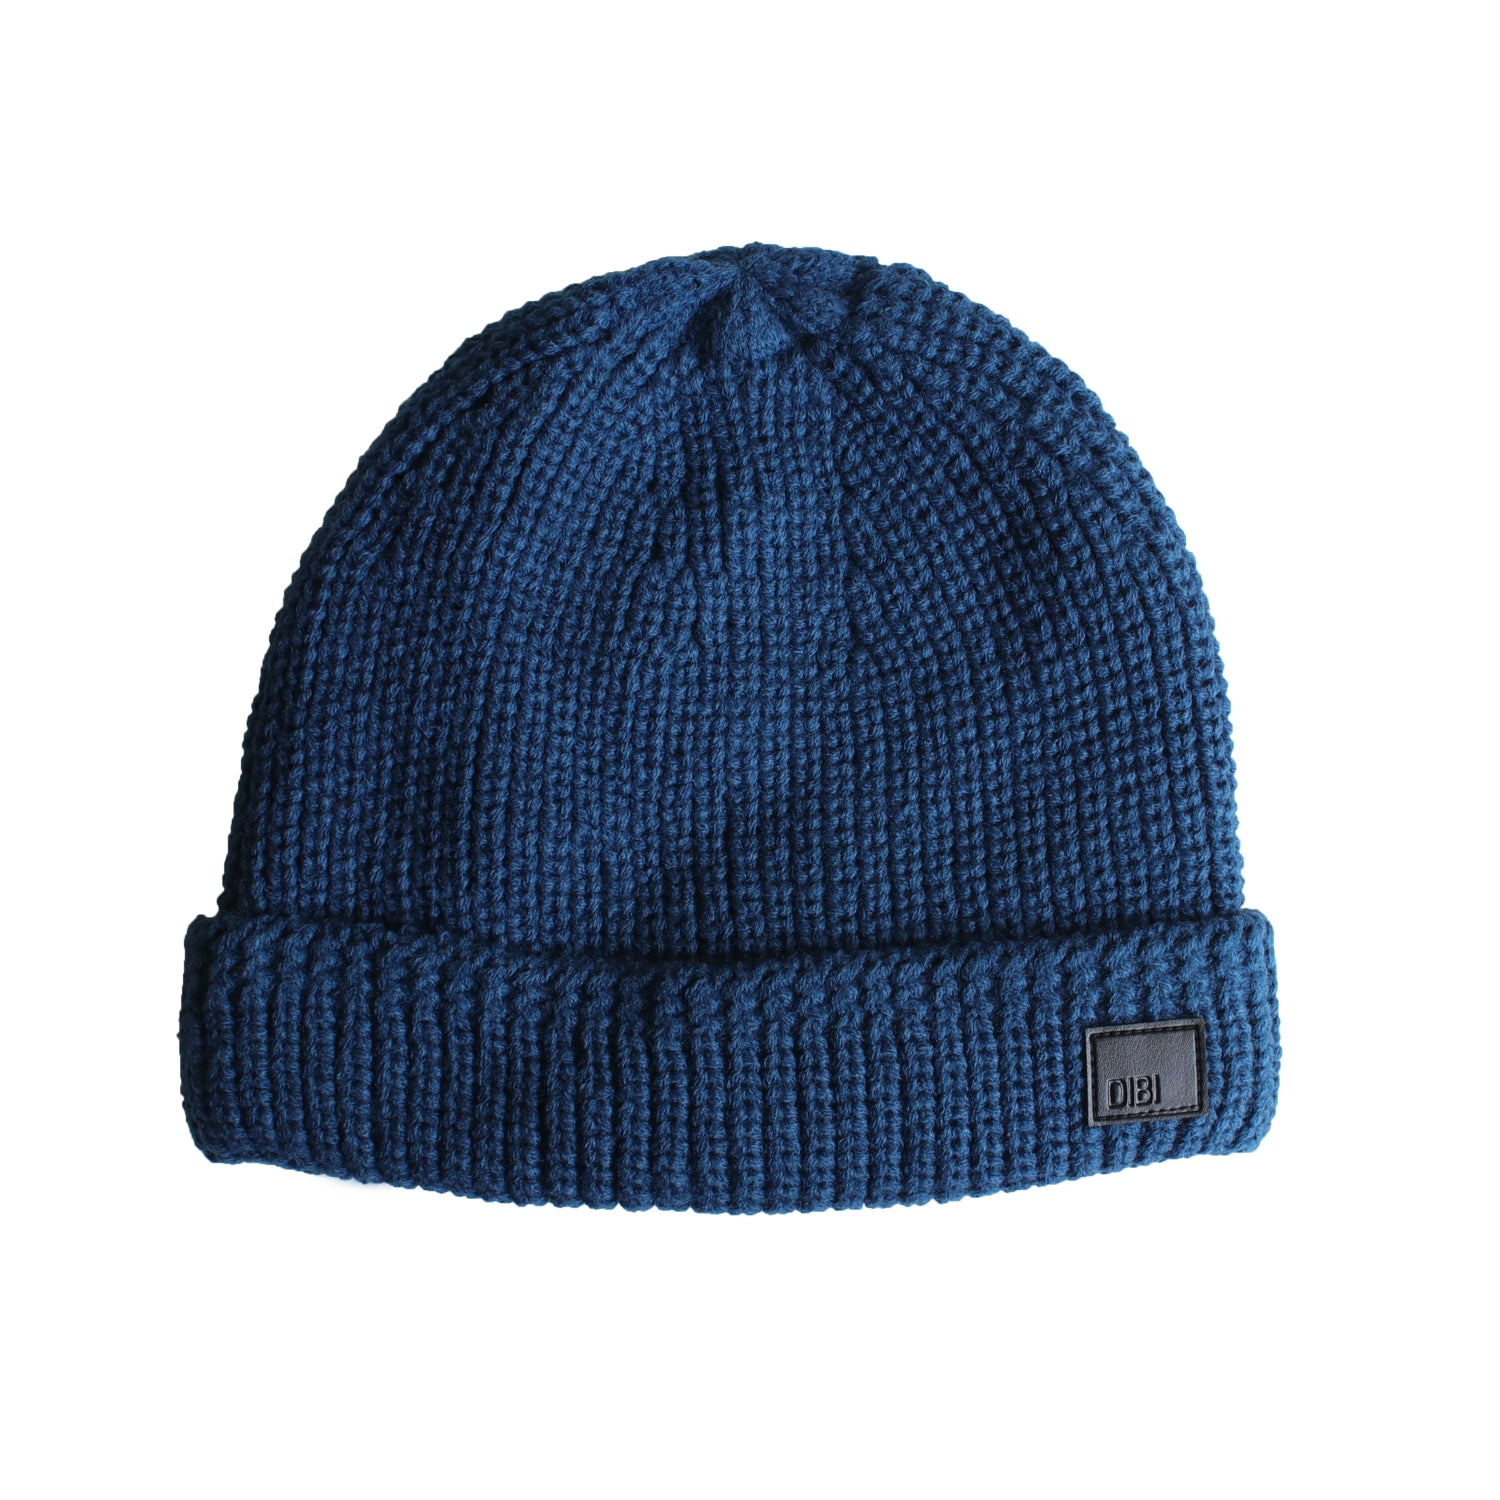 Teal Cable Knit Fur Lined Beanie from DIBI